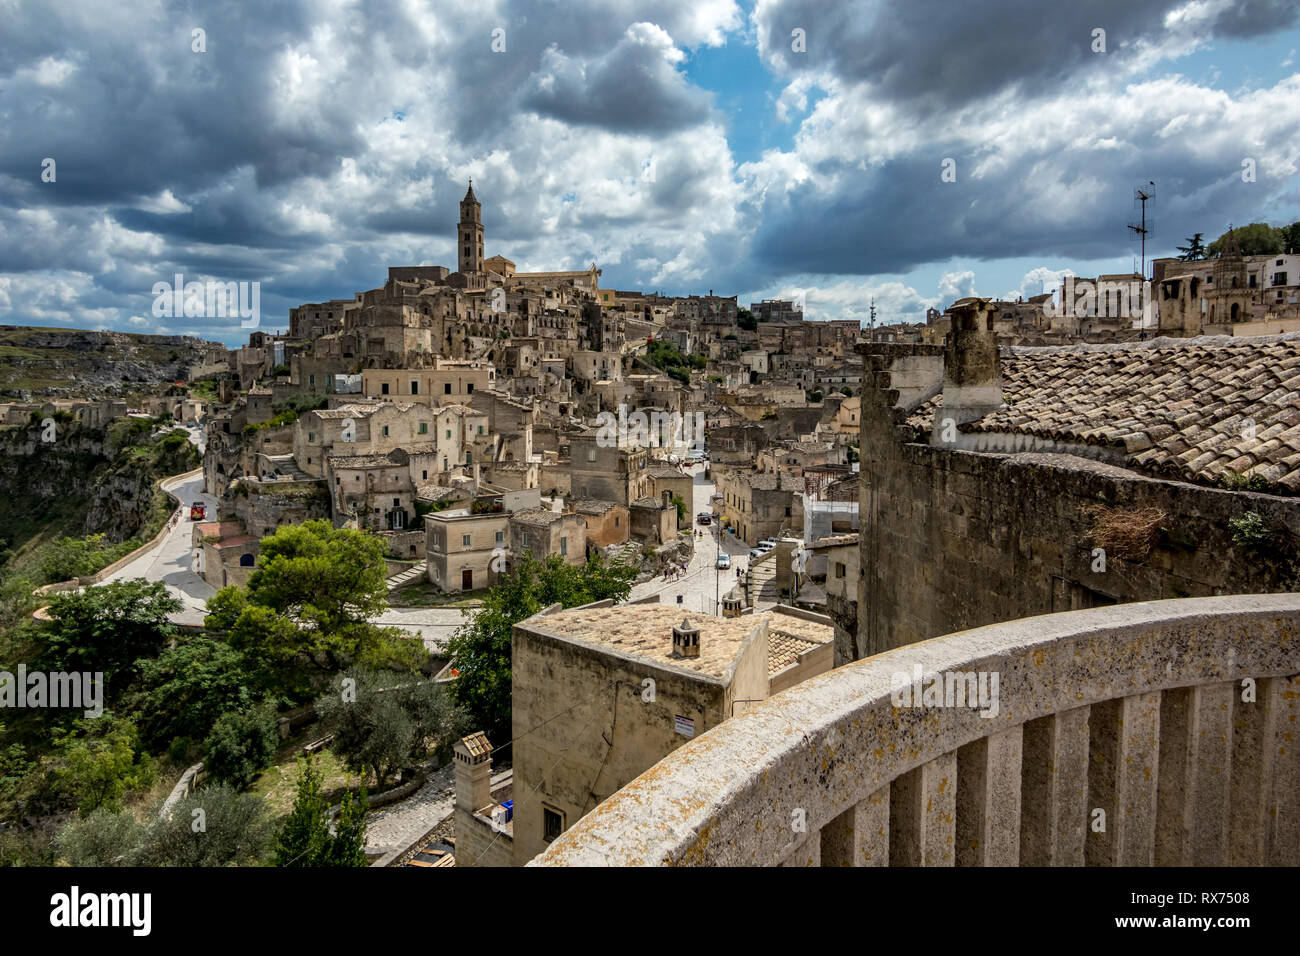 Matera Italy August 27 2018 Summer Day Scenery Street